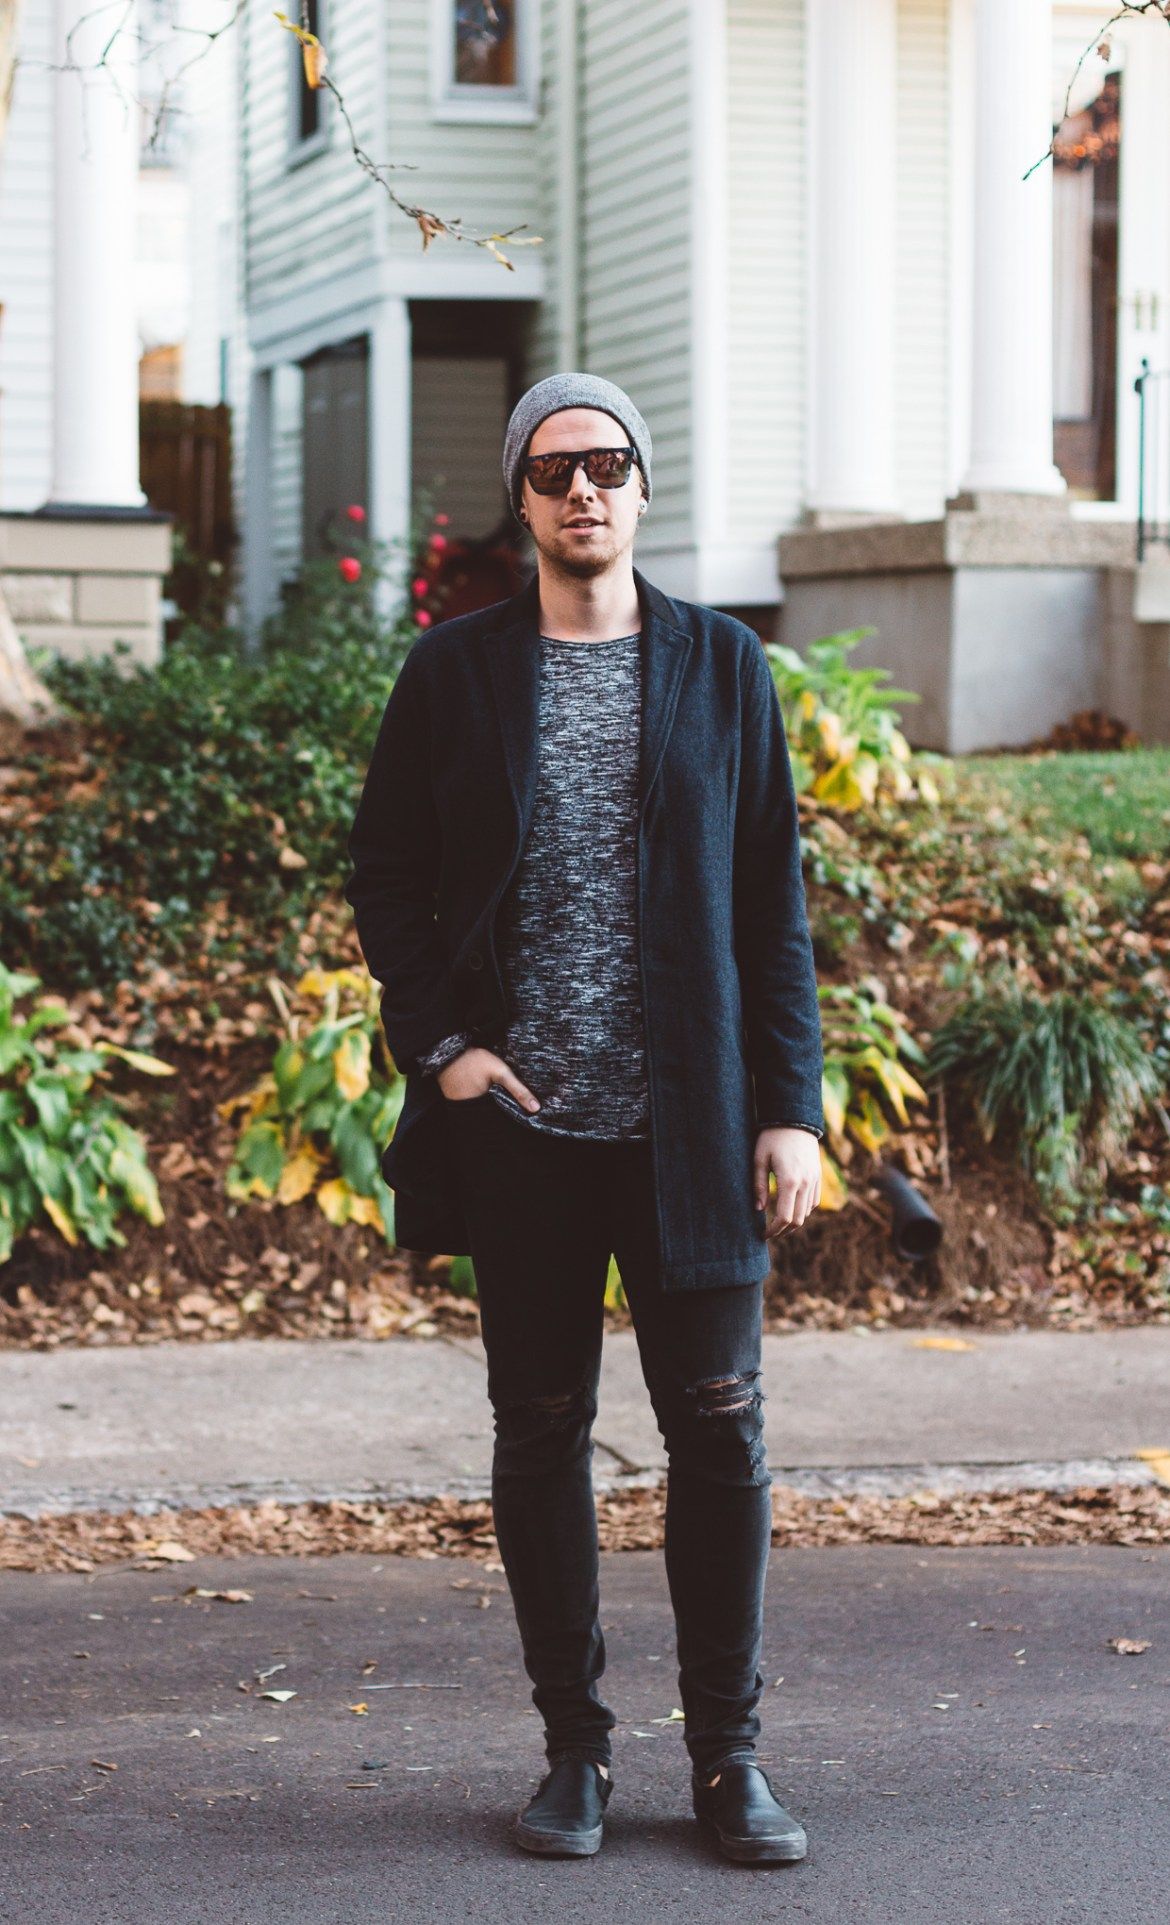 topman over, topman mens clothing, mens winter coats, how to wear a beanie, how to wear a blue coat